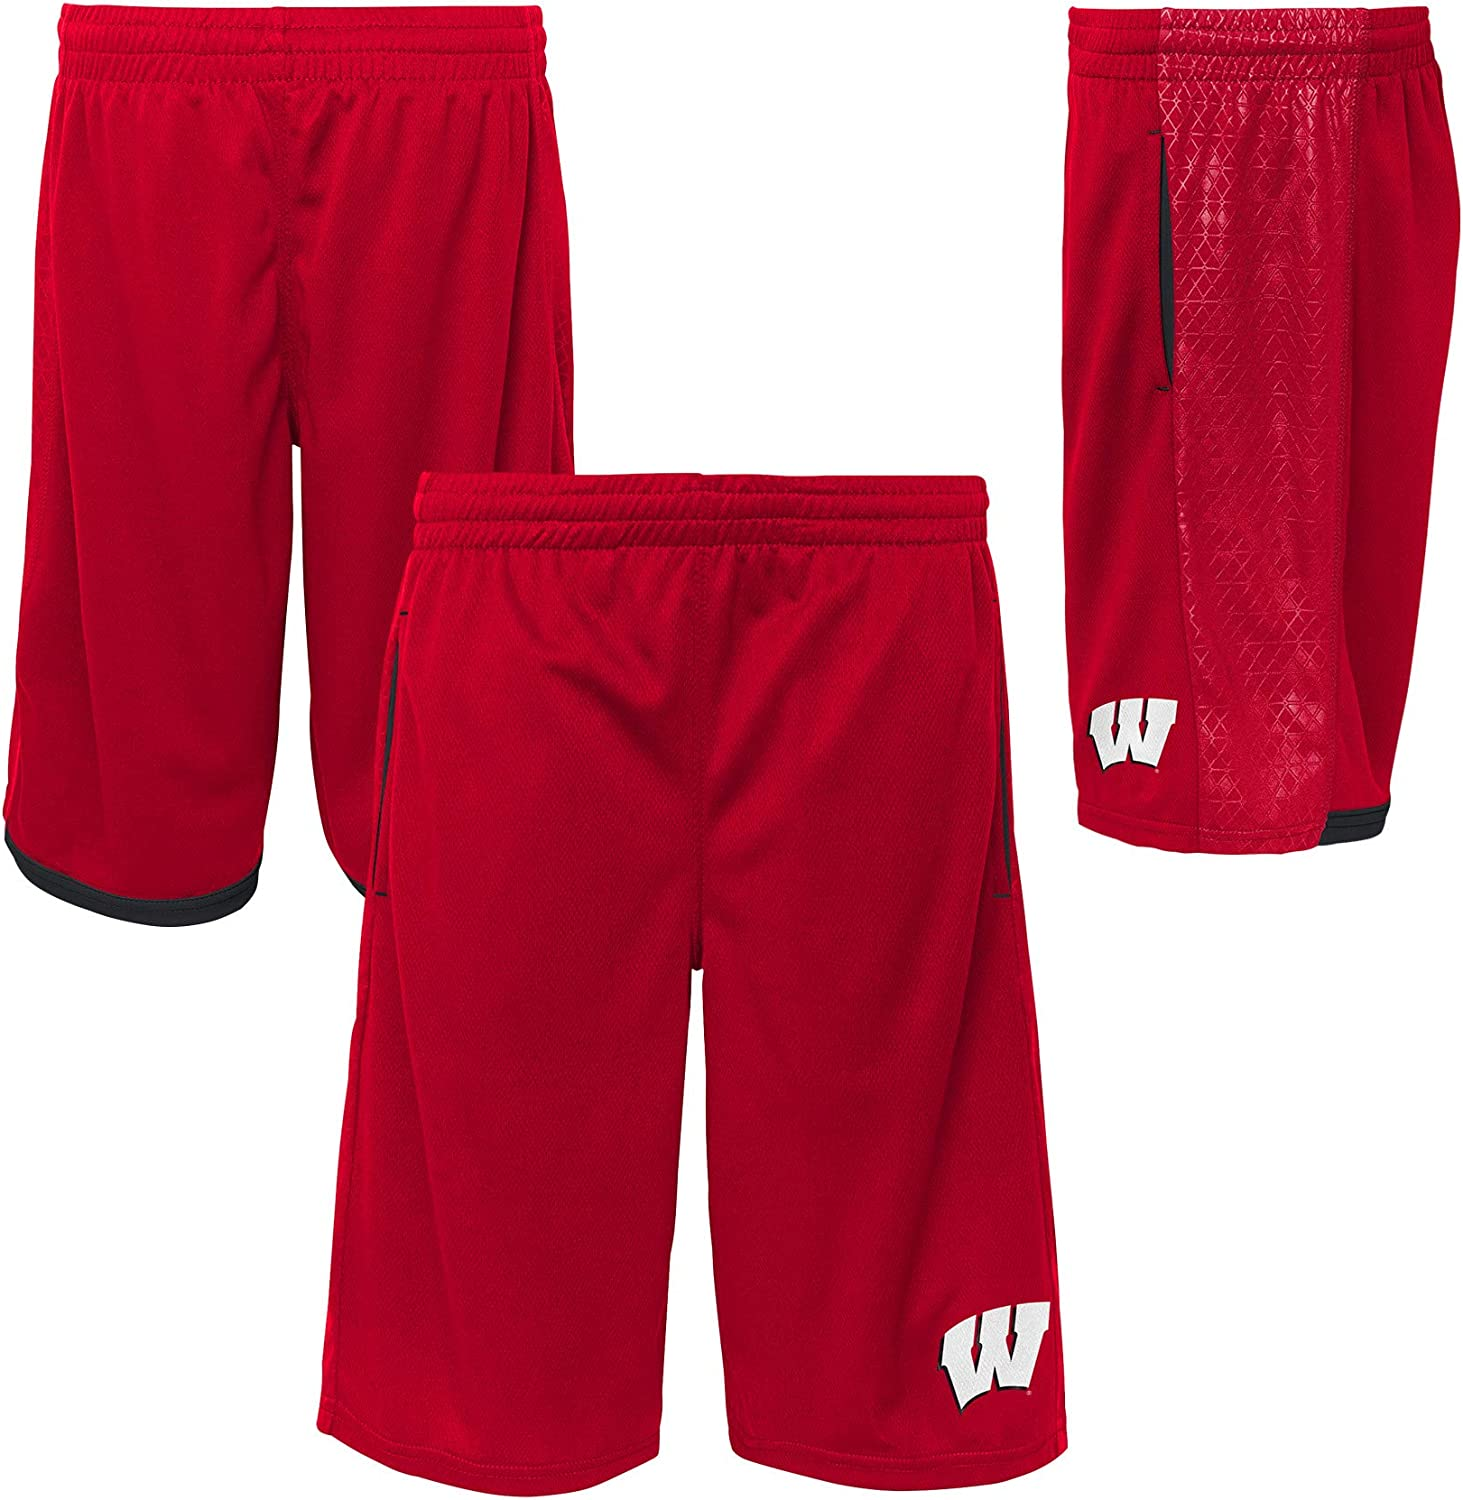 Outerstuff Wisconsin Badgers Youth Grid Shorts